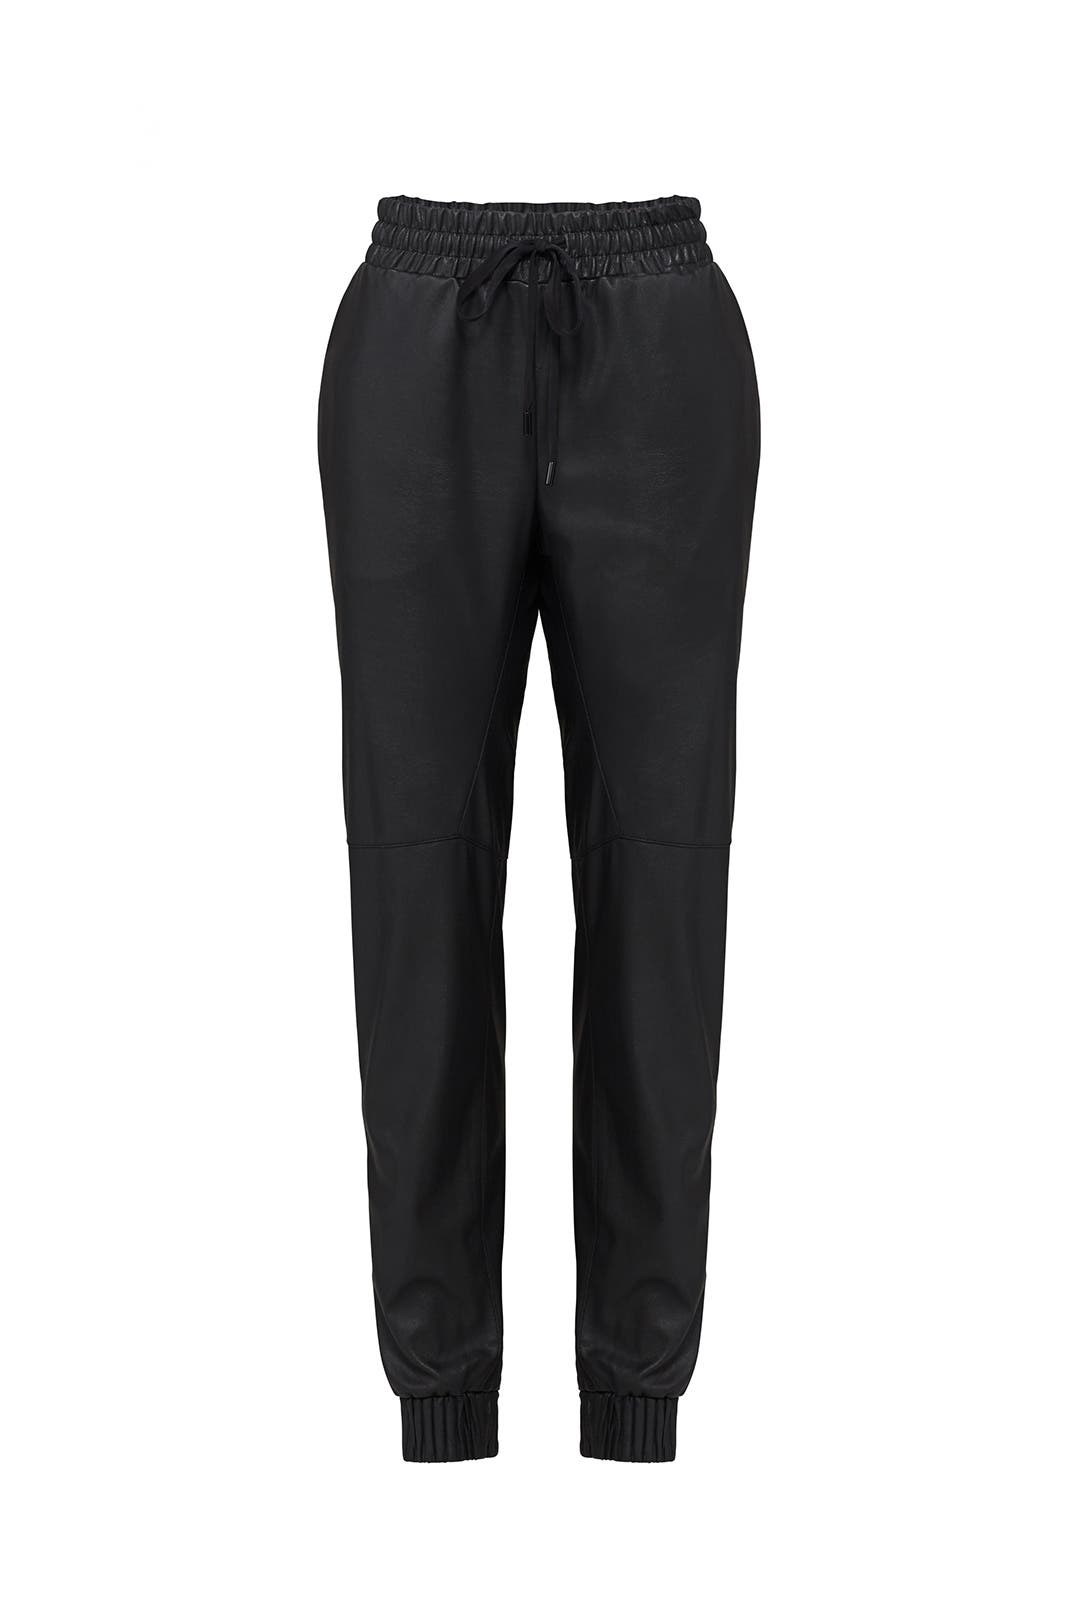 40db0021f0 Faux Leather Pants by Rebecca Taylor for $65 | Rent the Runway